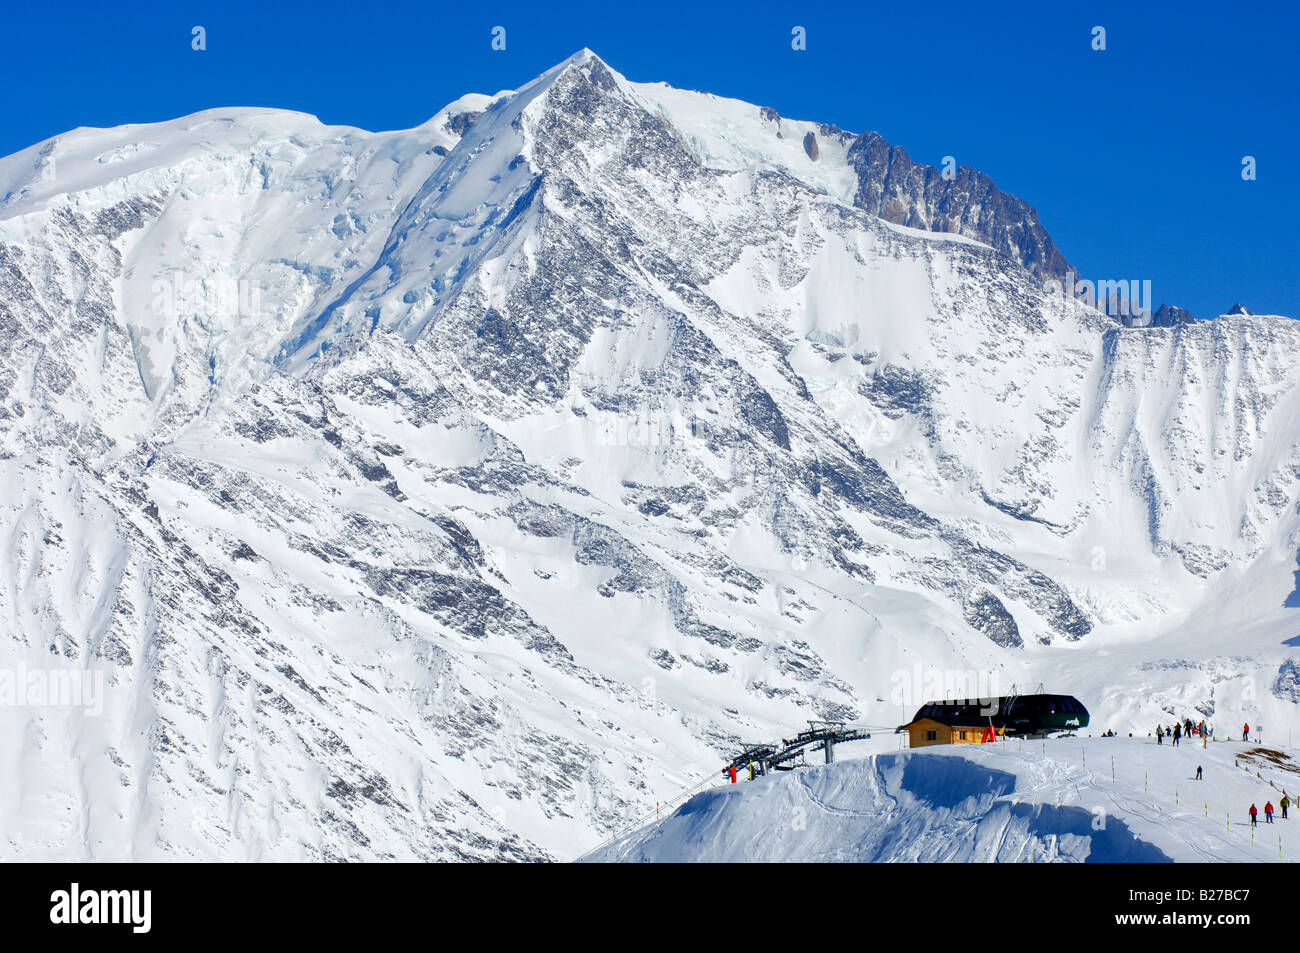 Skiing area Saint Gervais at the foot of the Mont Blanc massif St Gervais Haute Savoie France - Stock Image